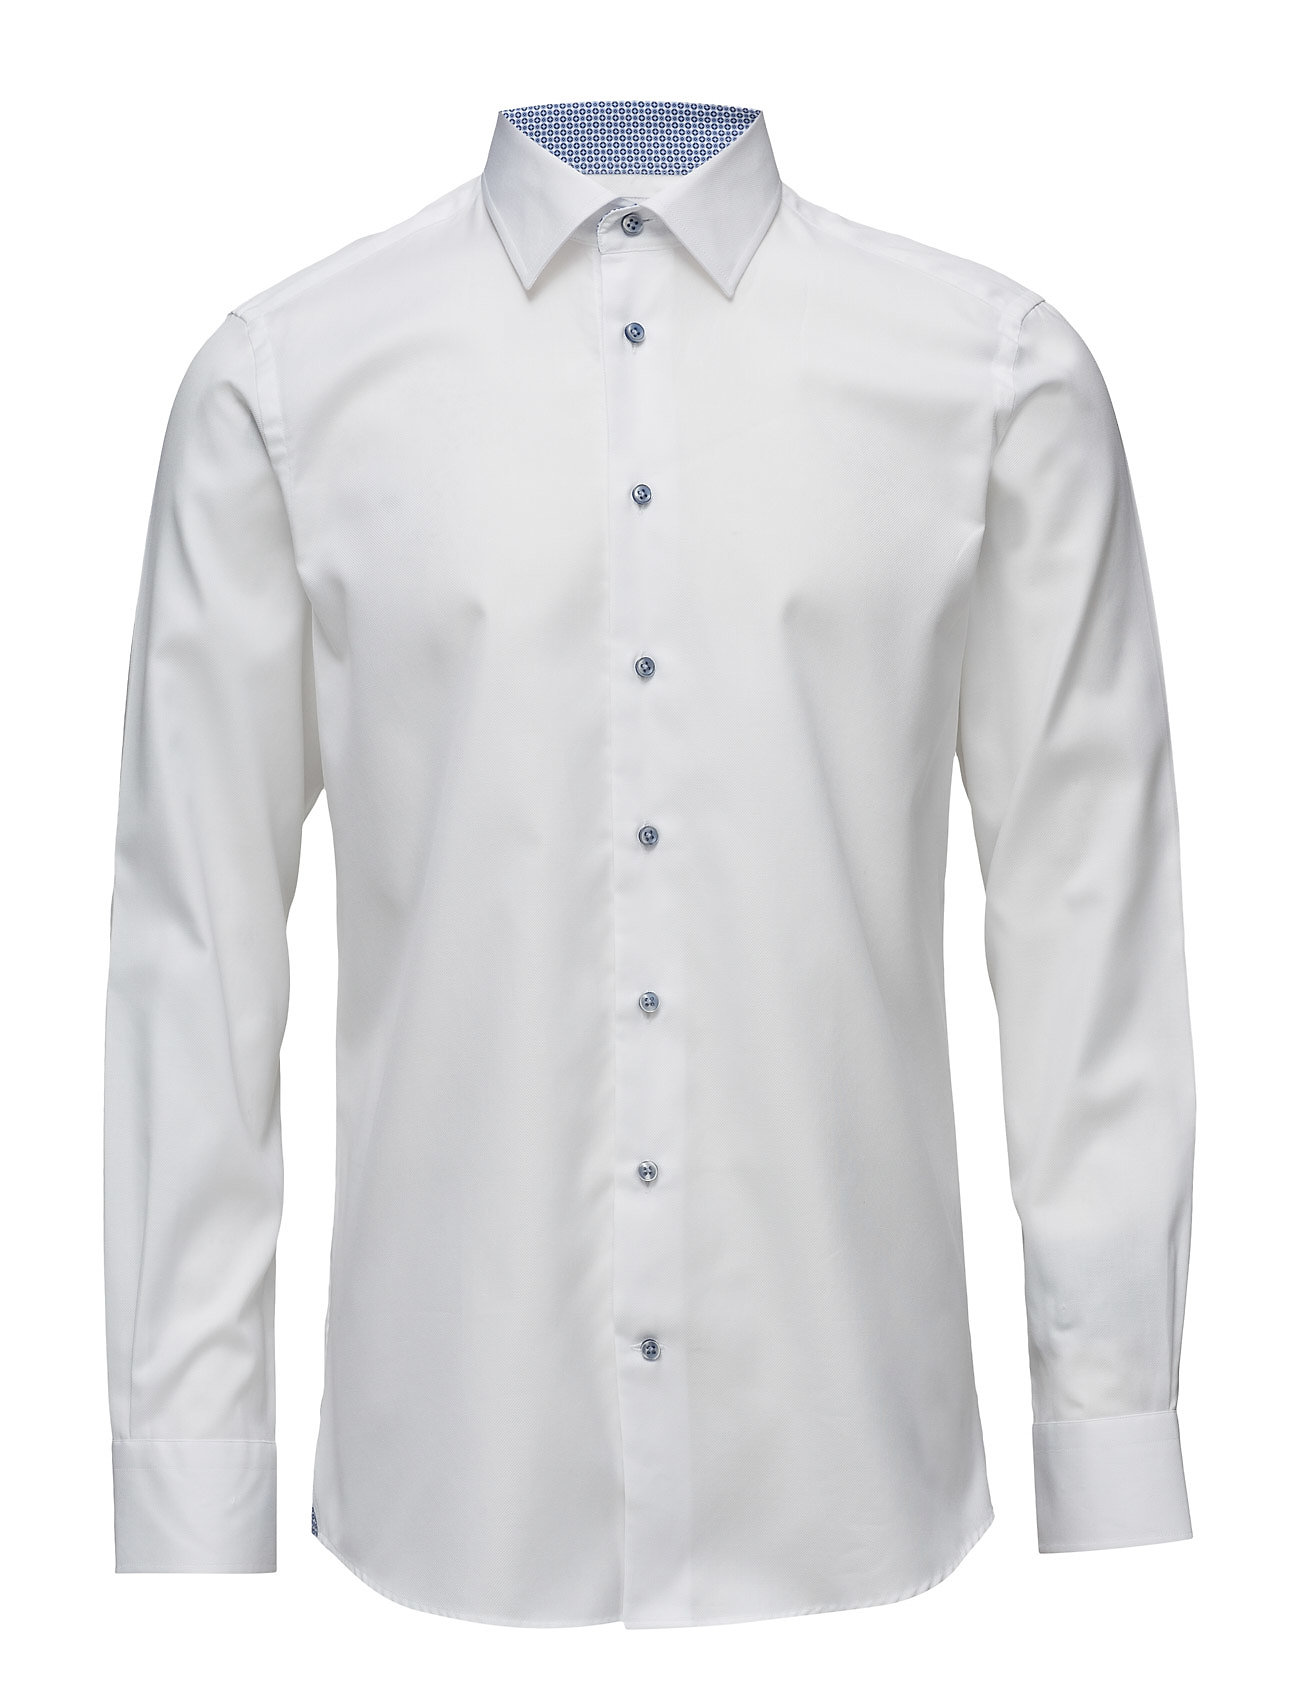 8543 Details - Gordon Sc XO Shirtmaker Business til Herrer i